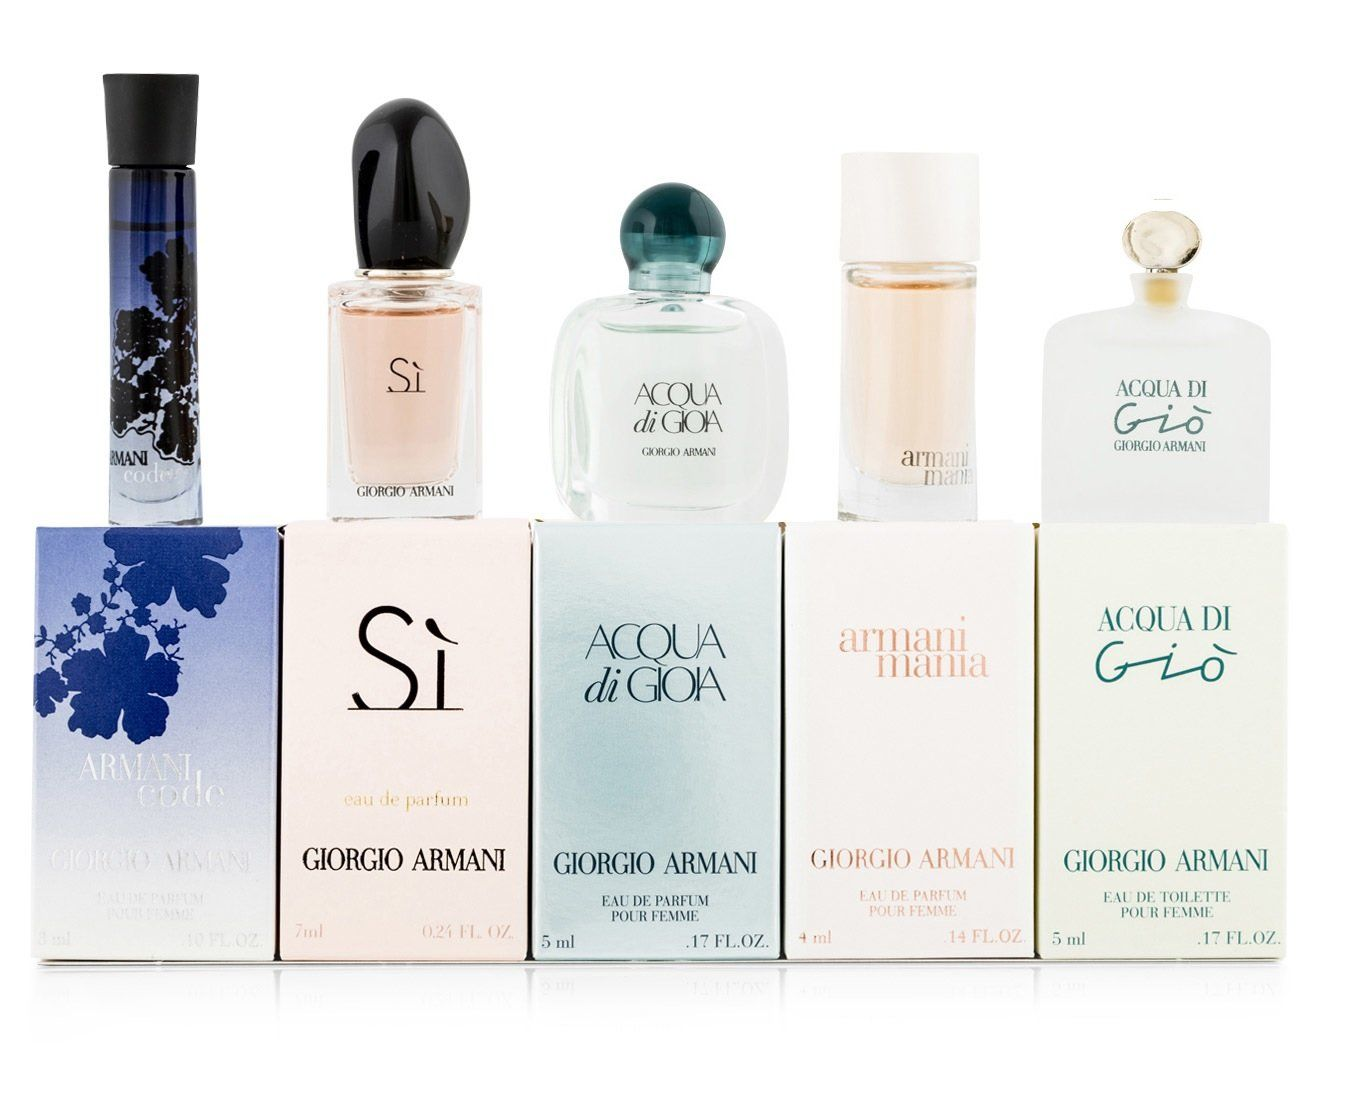 best female perfumes in Kenya: Armani perfuumes for women including Acqua di Gio